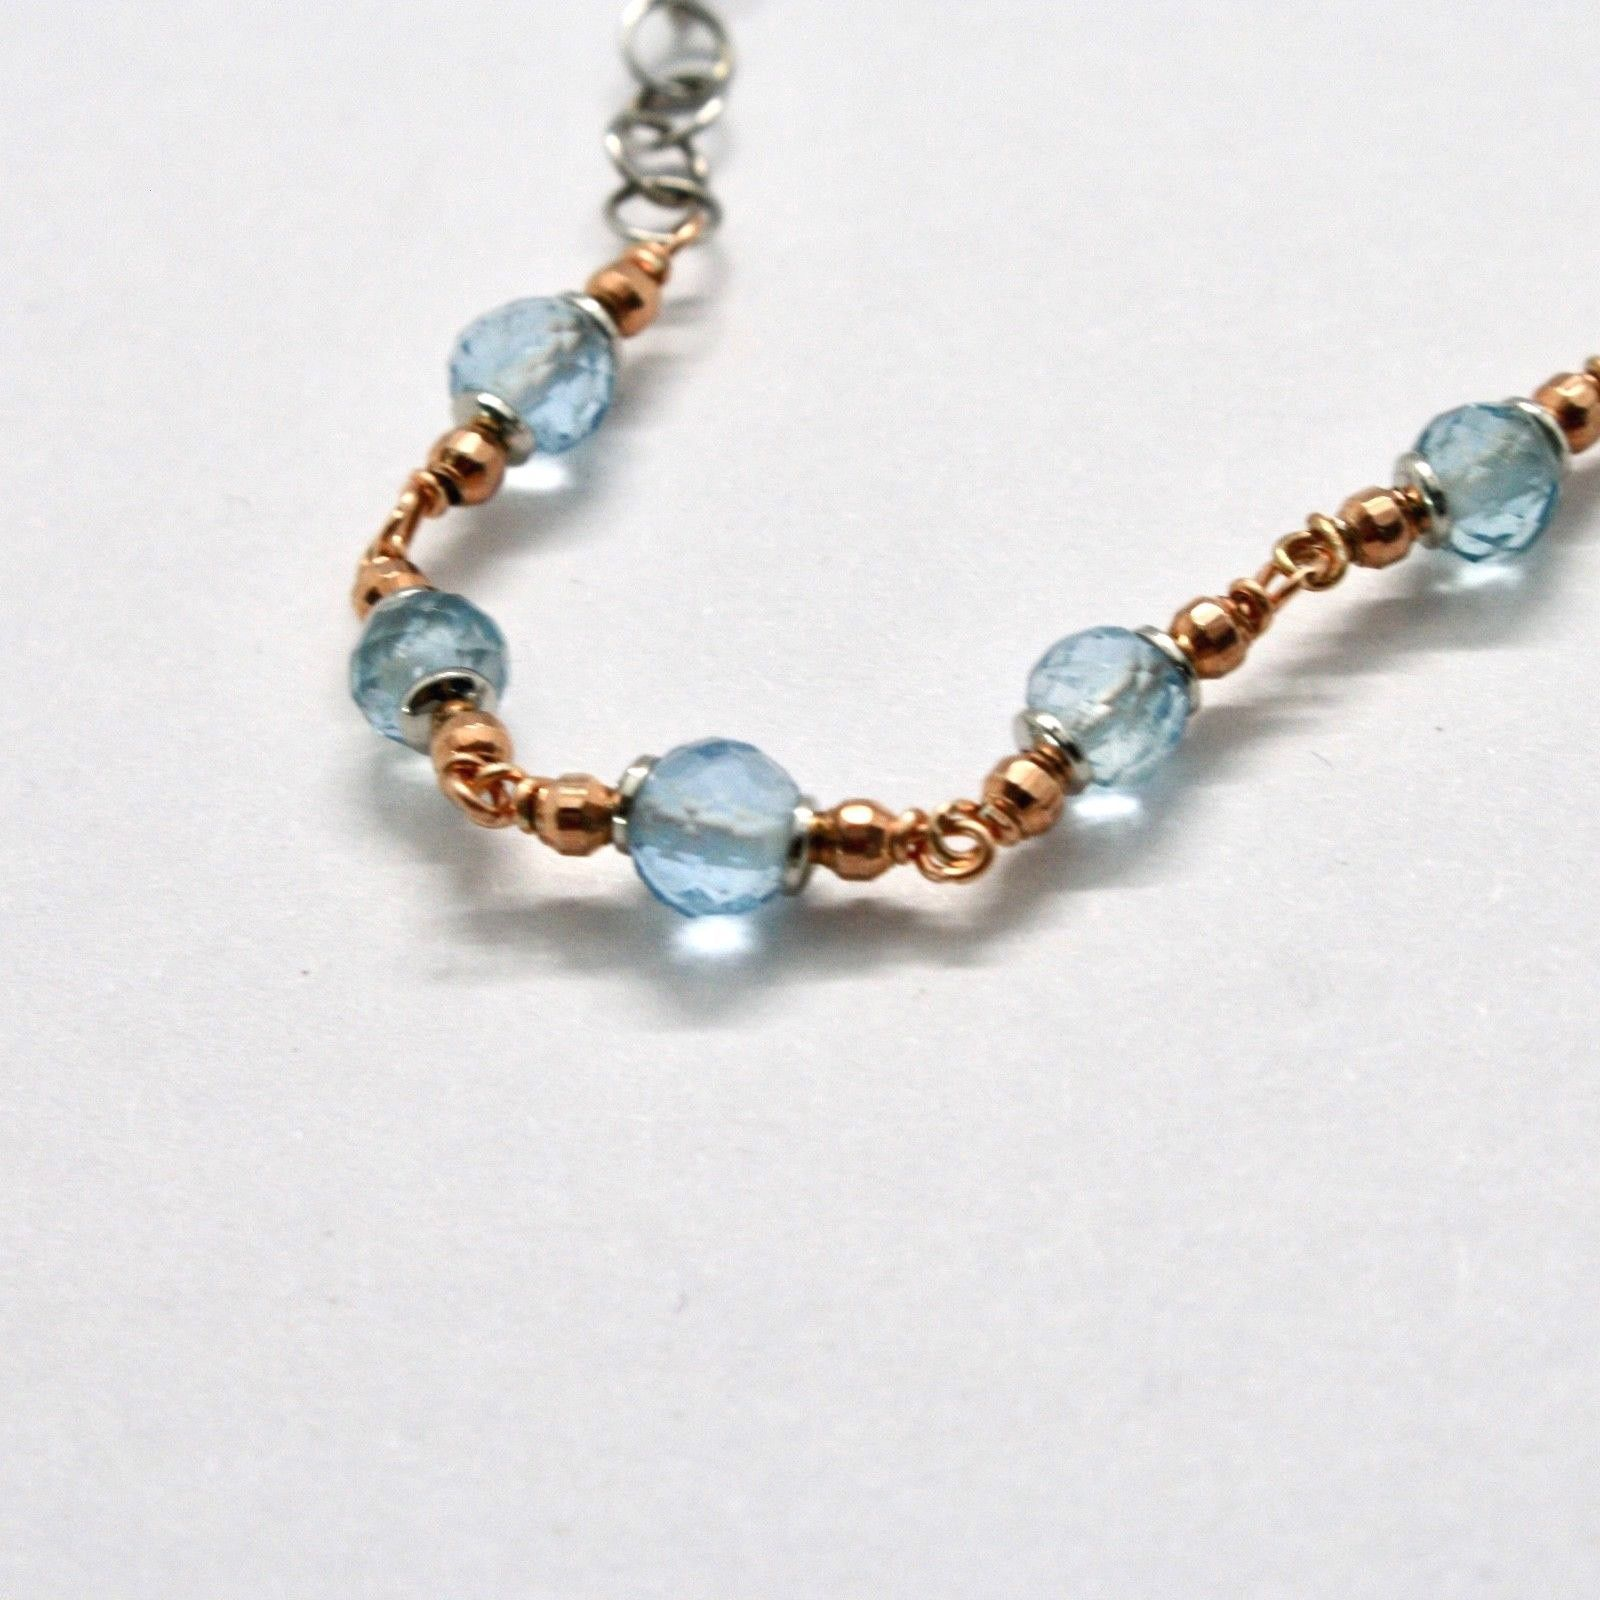 Silver Bracelet 925 Laminated in Rose Gold with Aquamarine and Zircon Cubic image 6